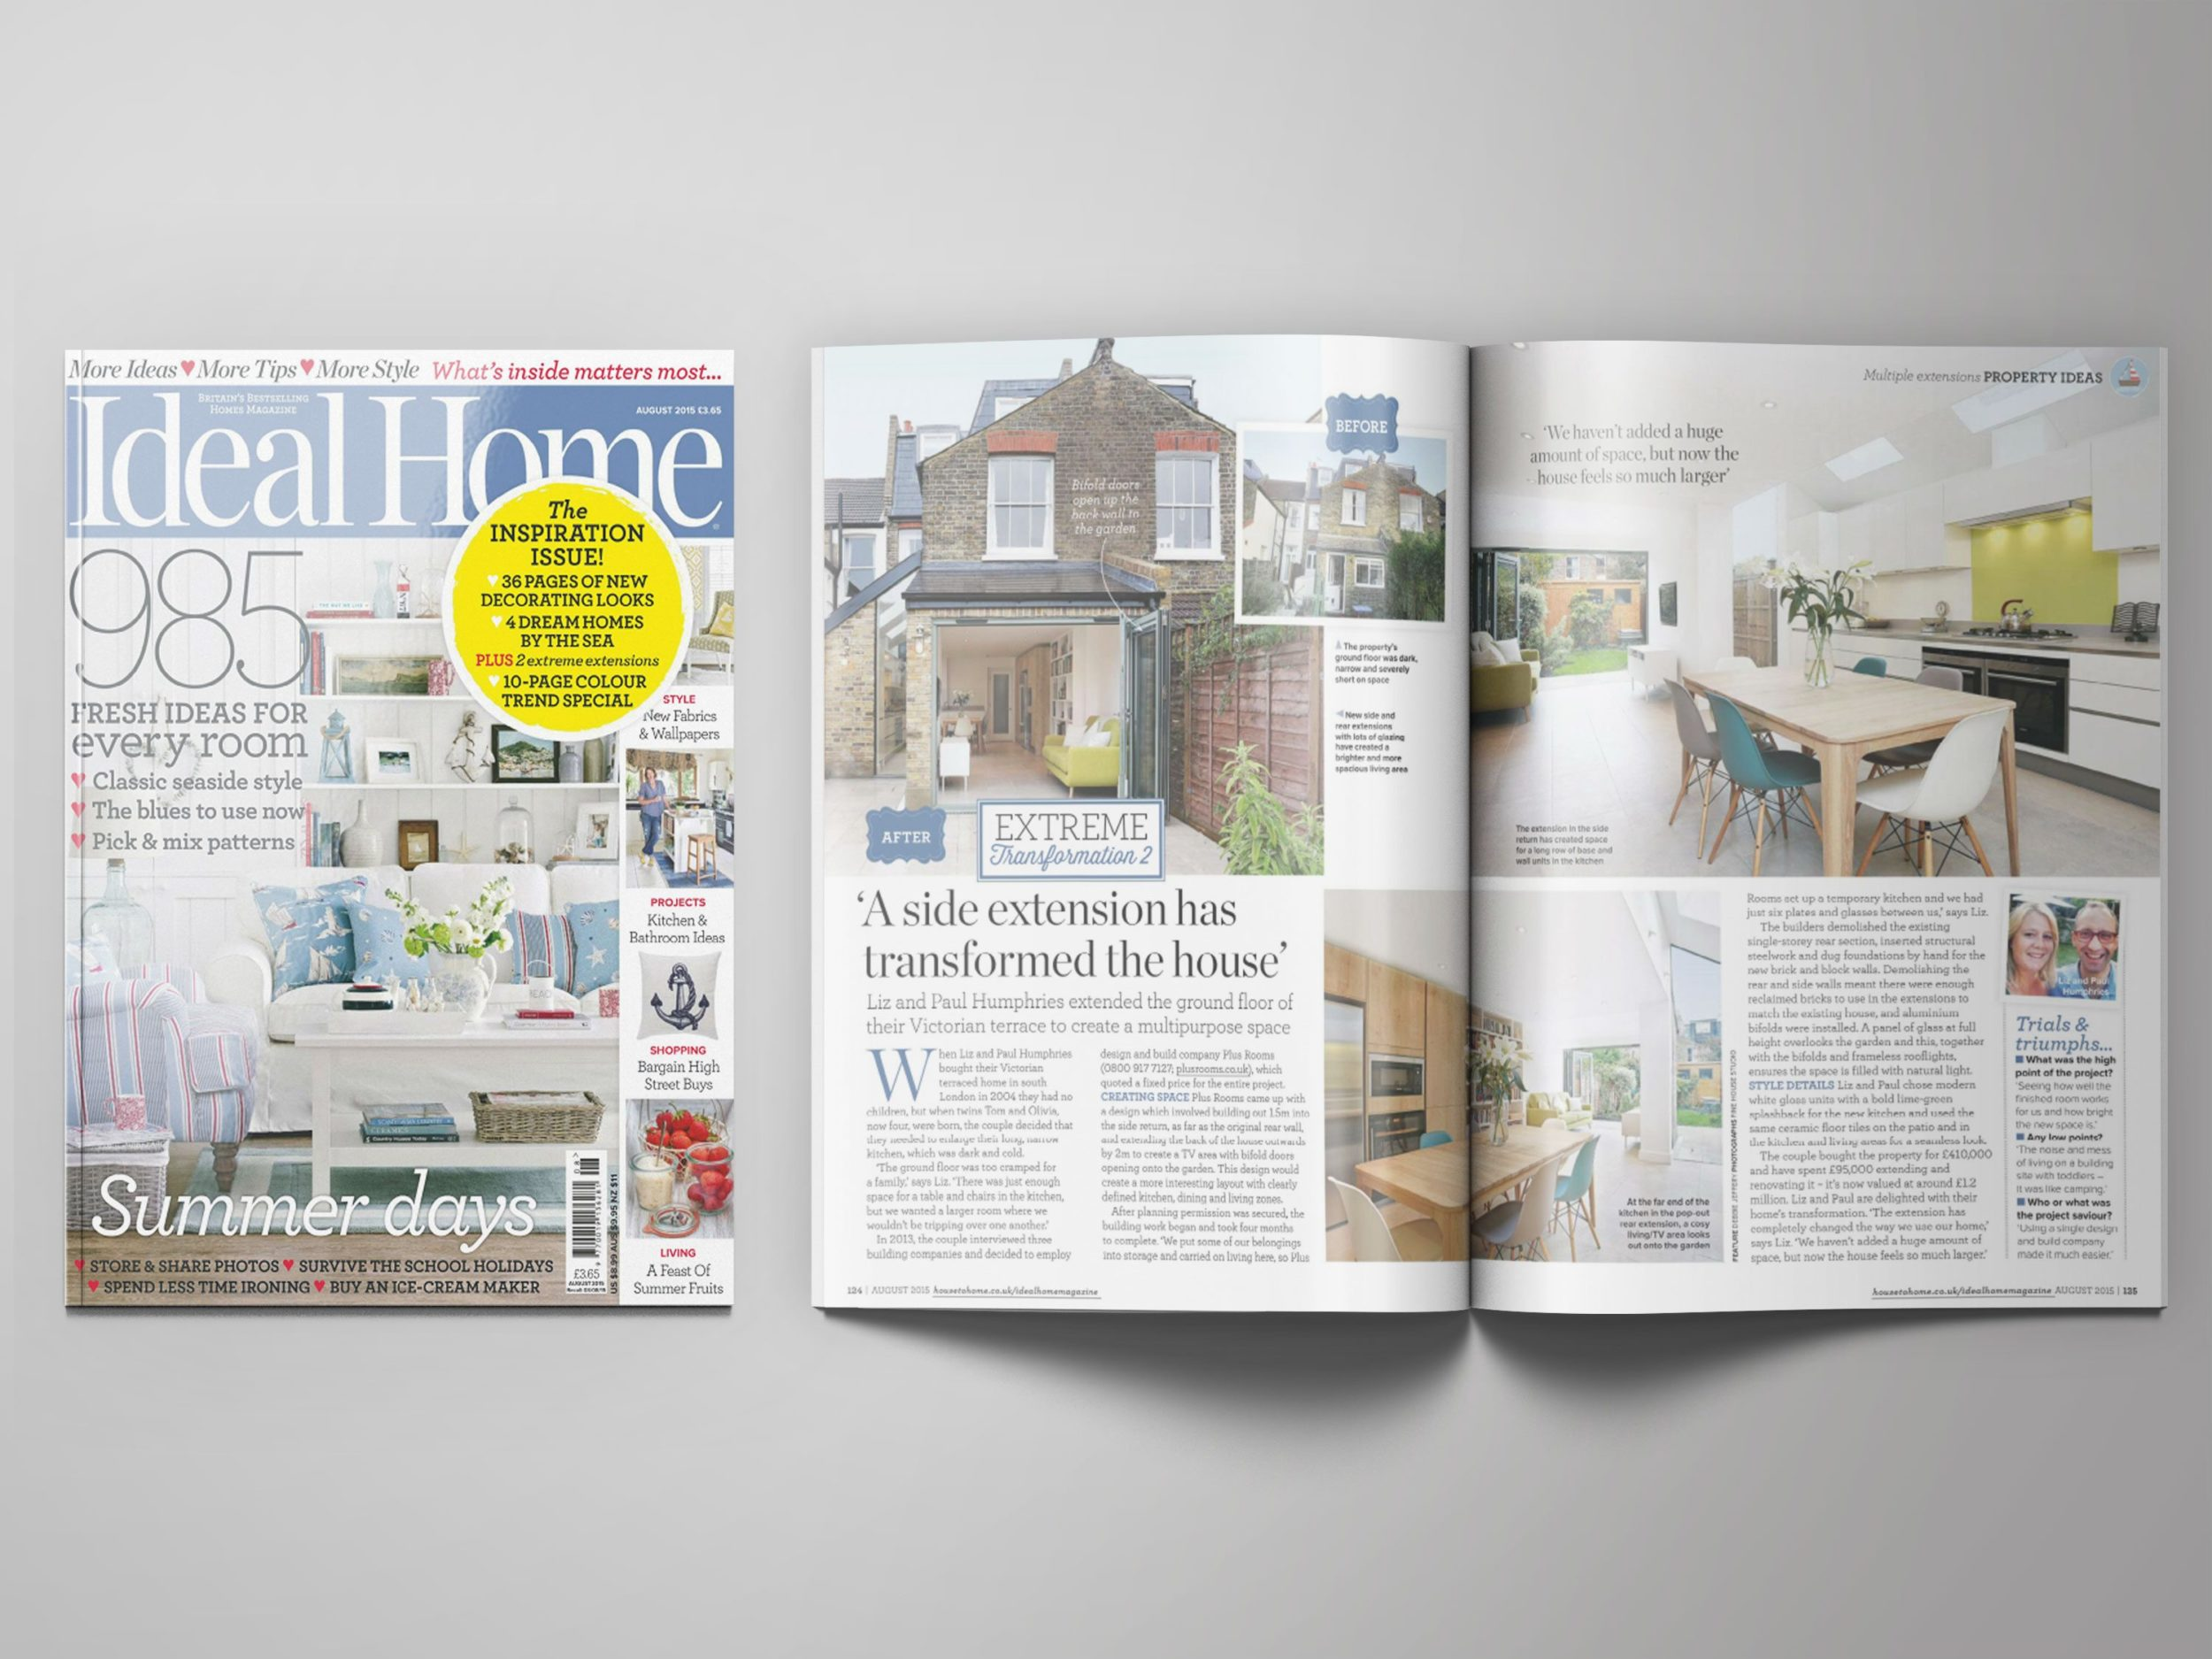 Ideal Home Sept 2015